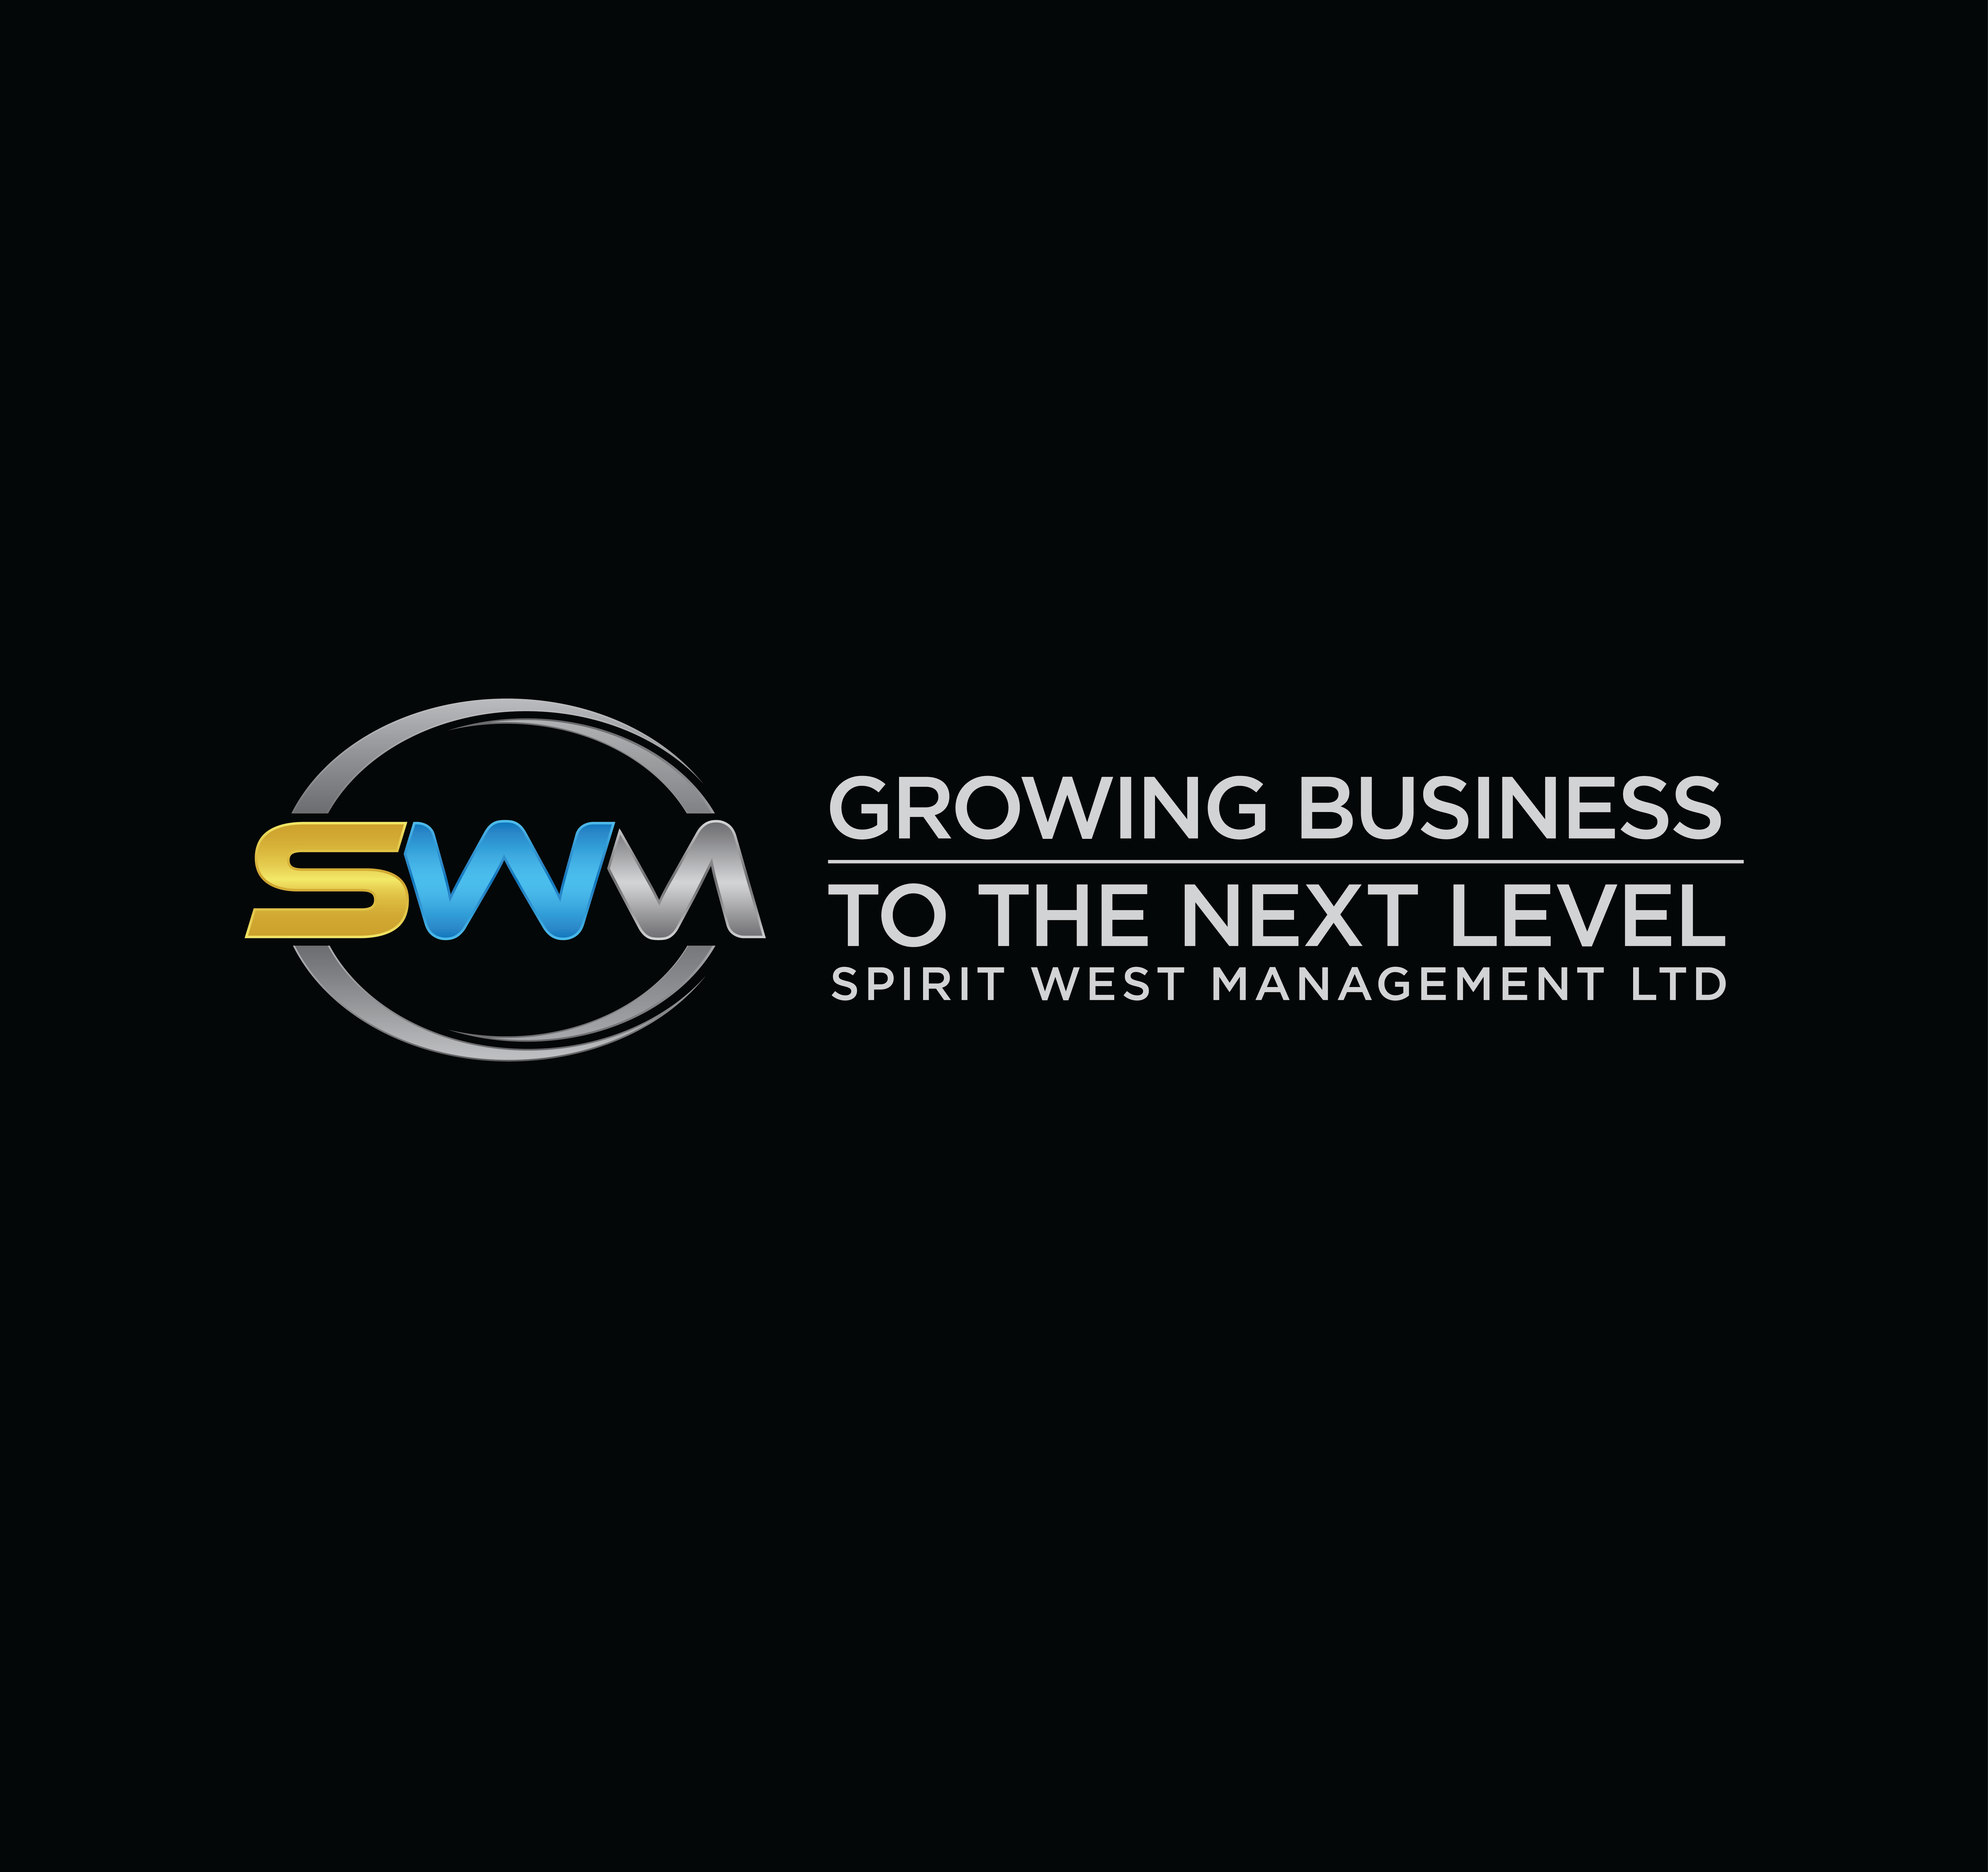 Re-brand Spirit West Management to SWM, The Business Performance People